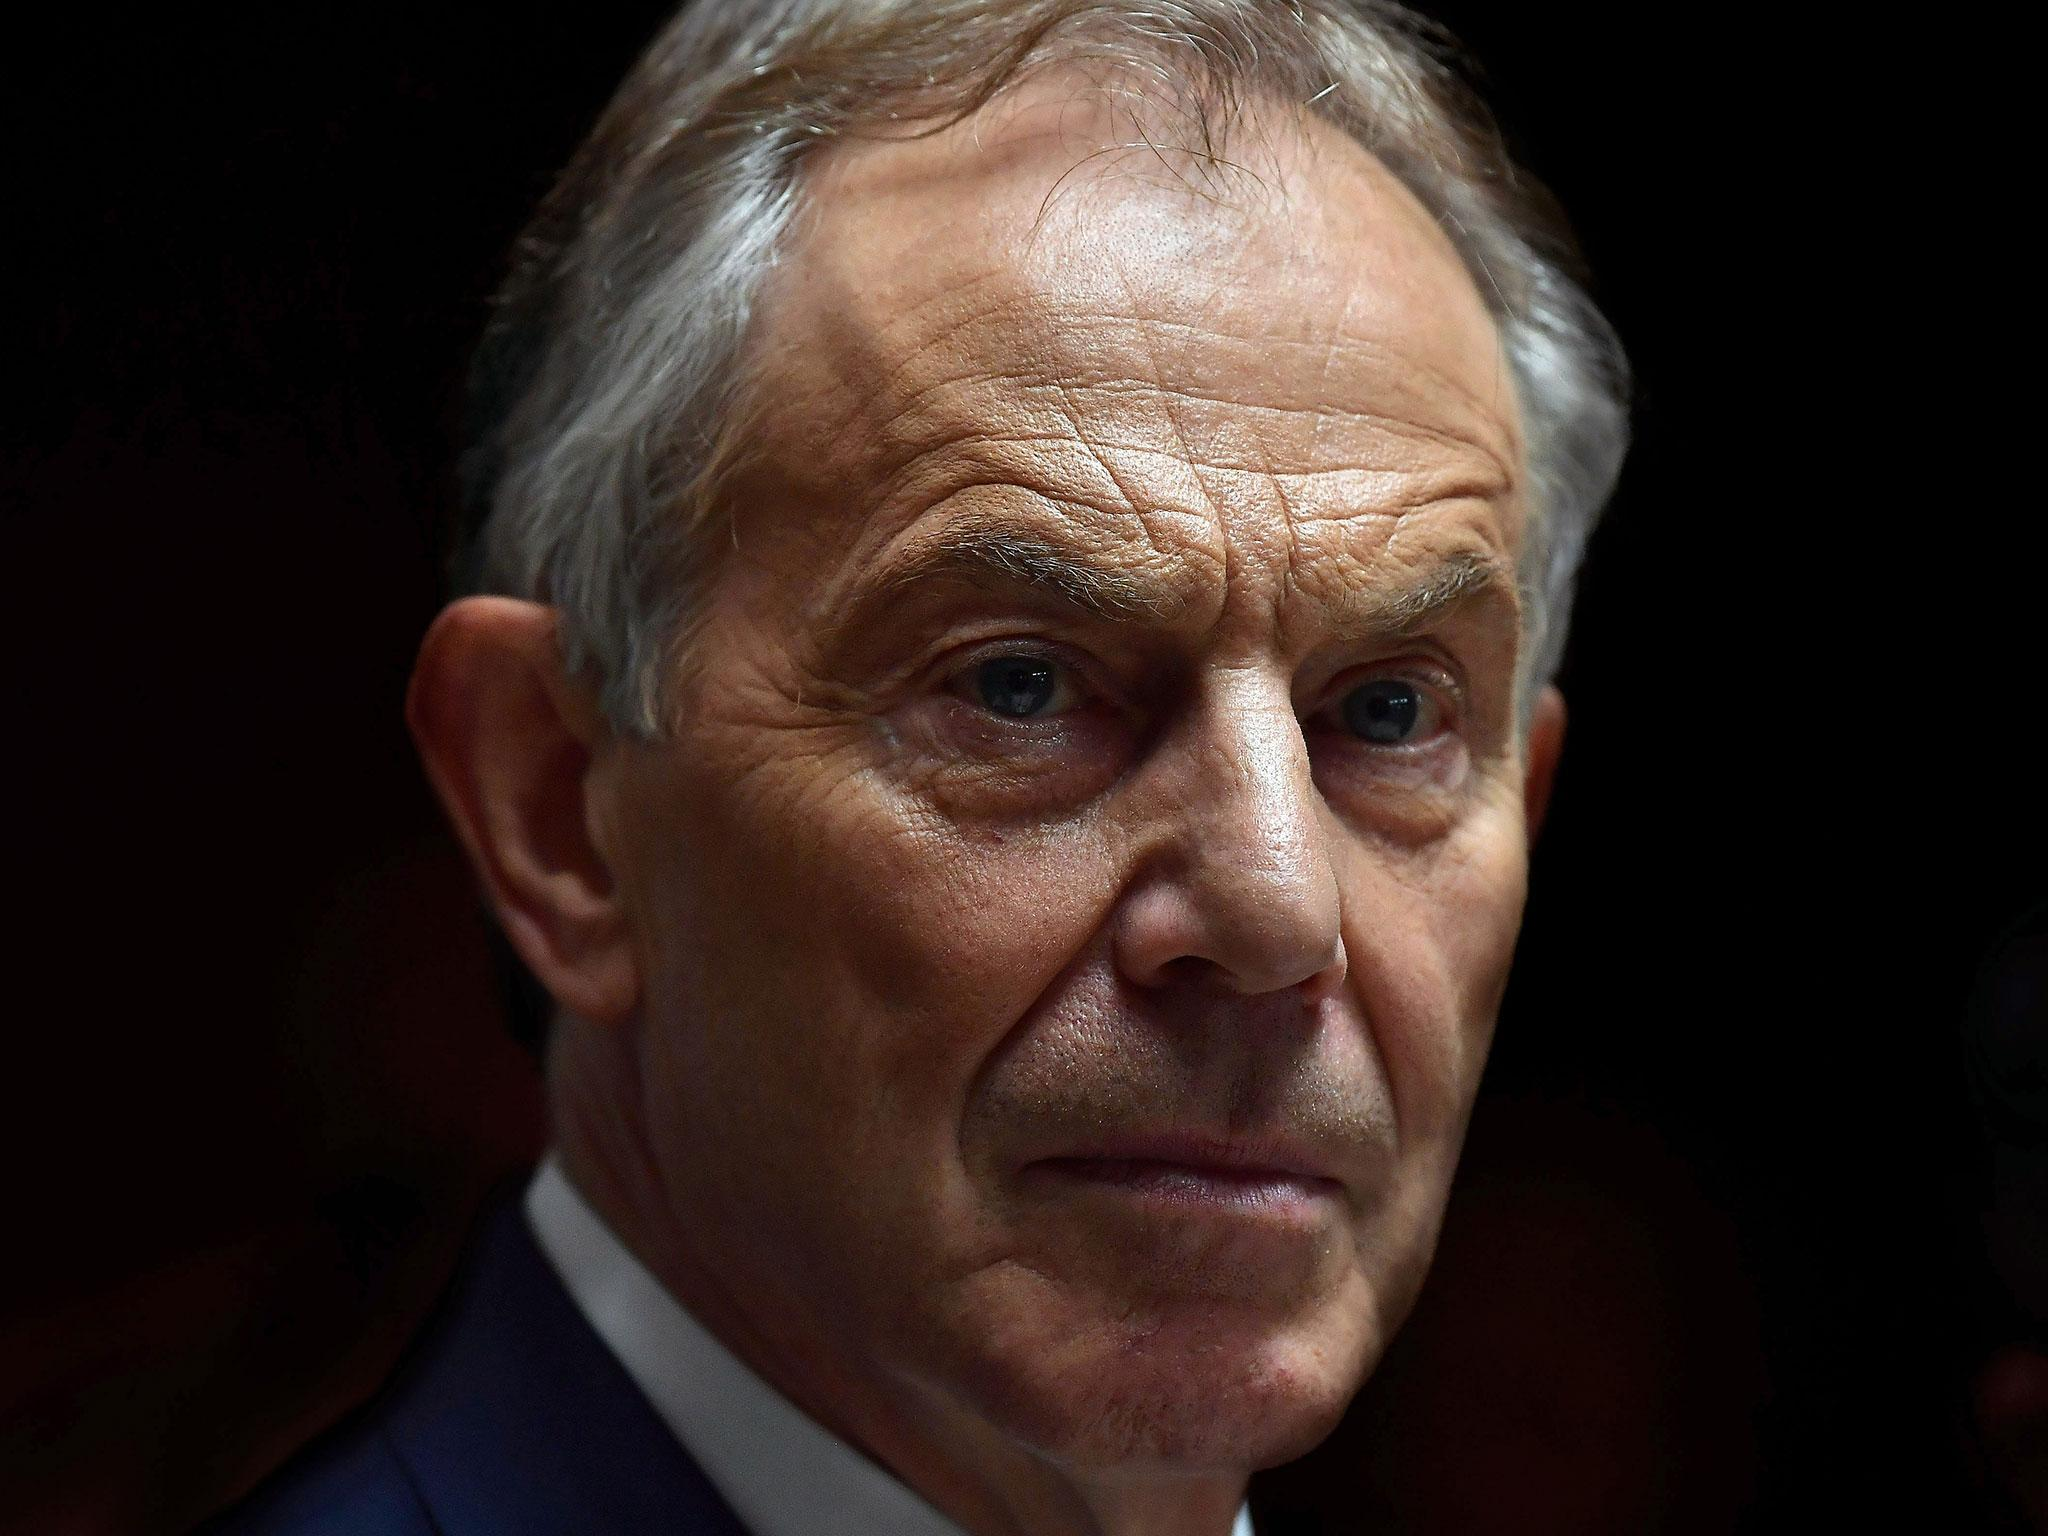 Why was Tony Blair being paid by the UAE while working as Middle East envoy?